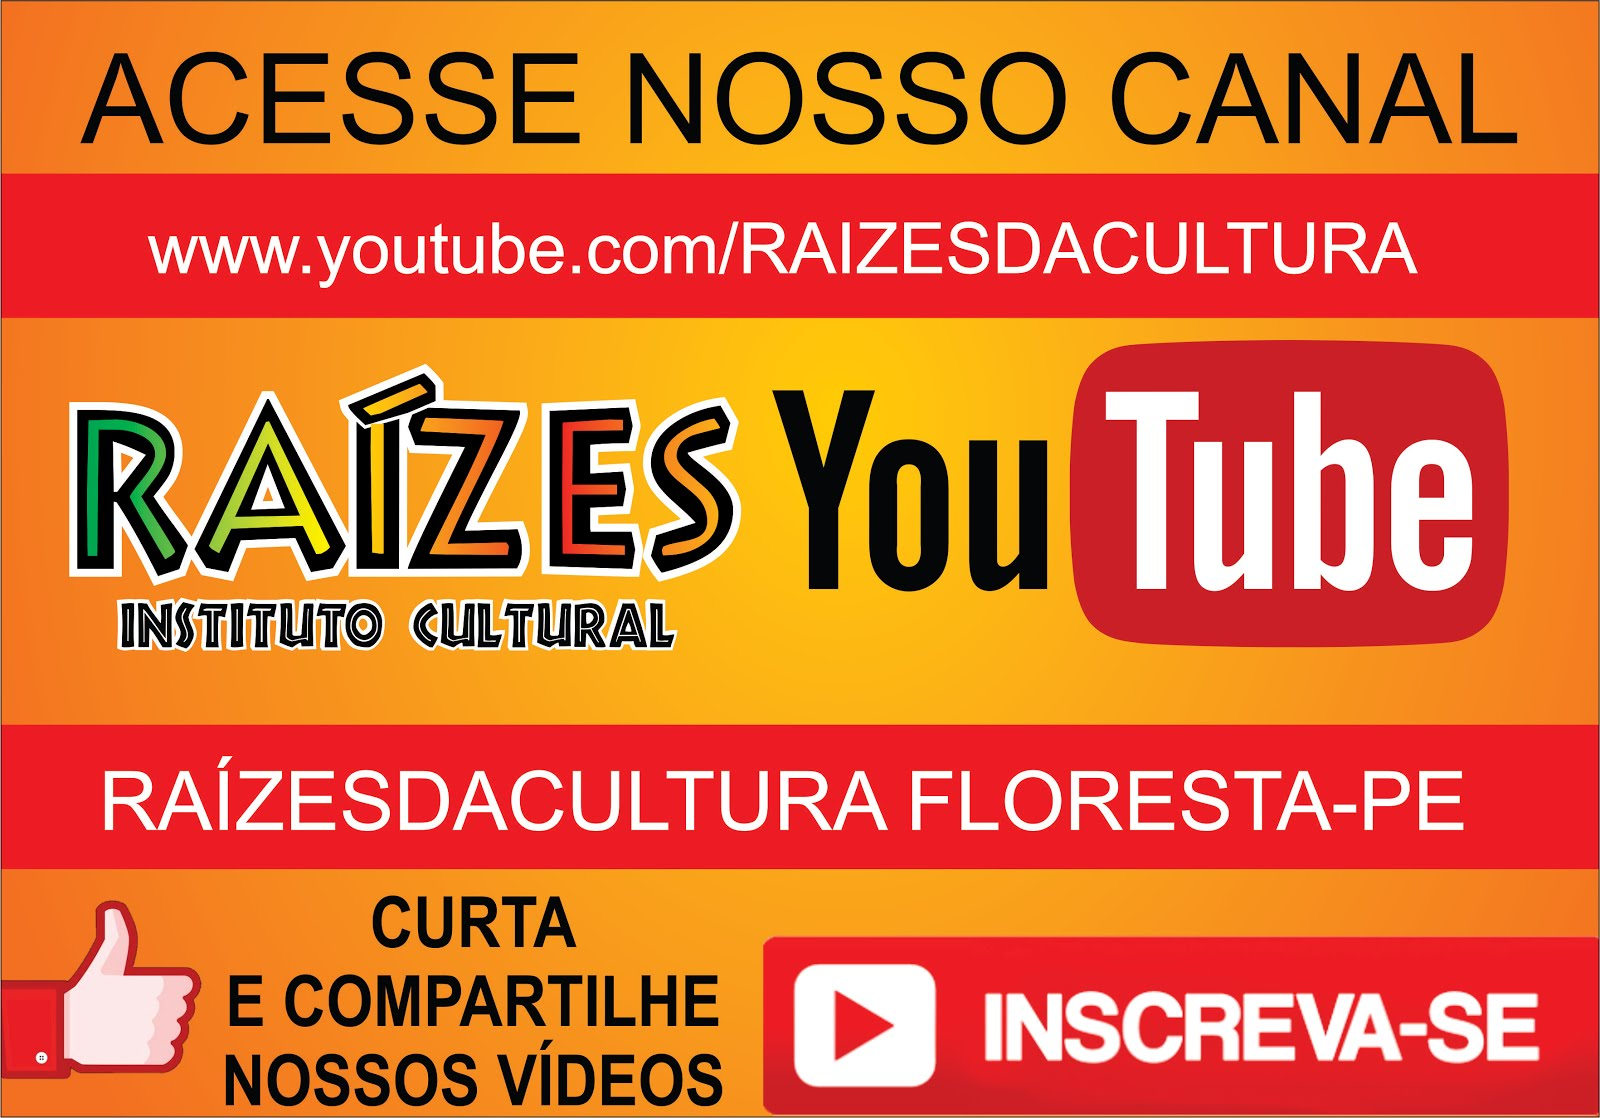 CANAL DE VÍDEOS DO INSTITUTO RAÍZES NO YOUTUBE